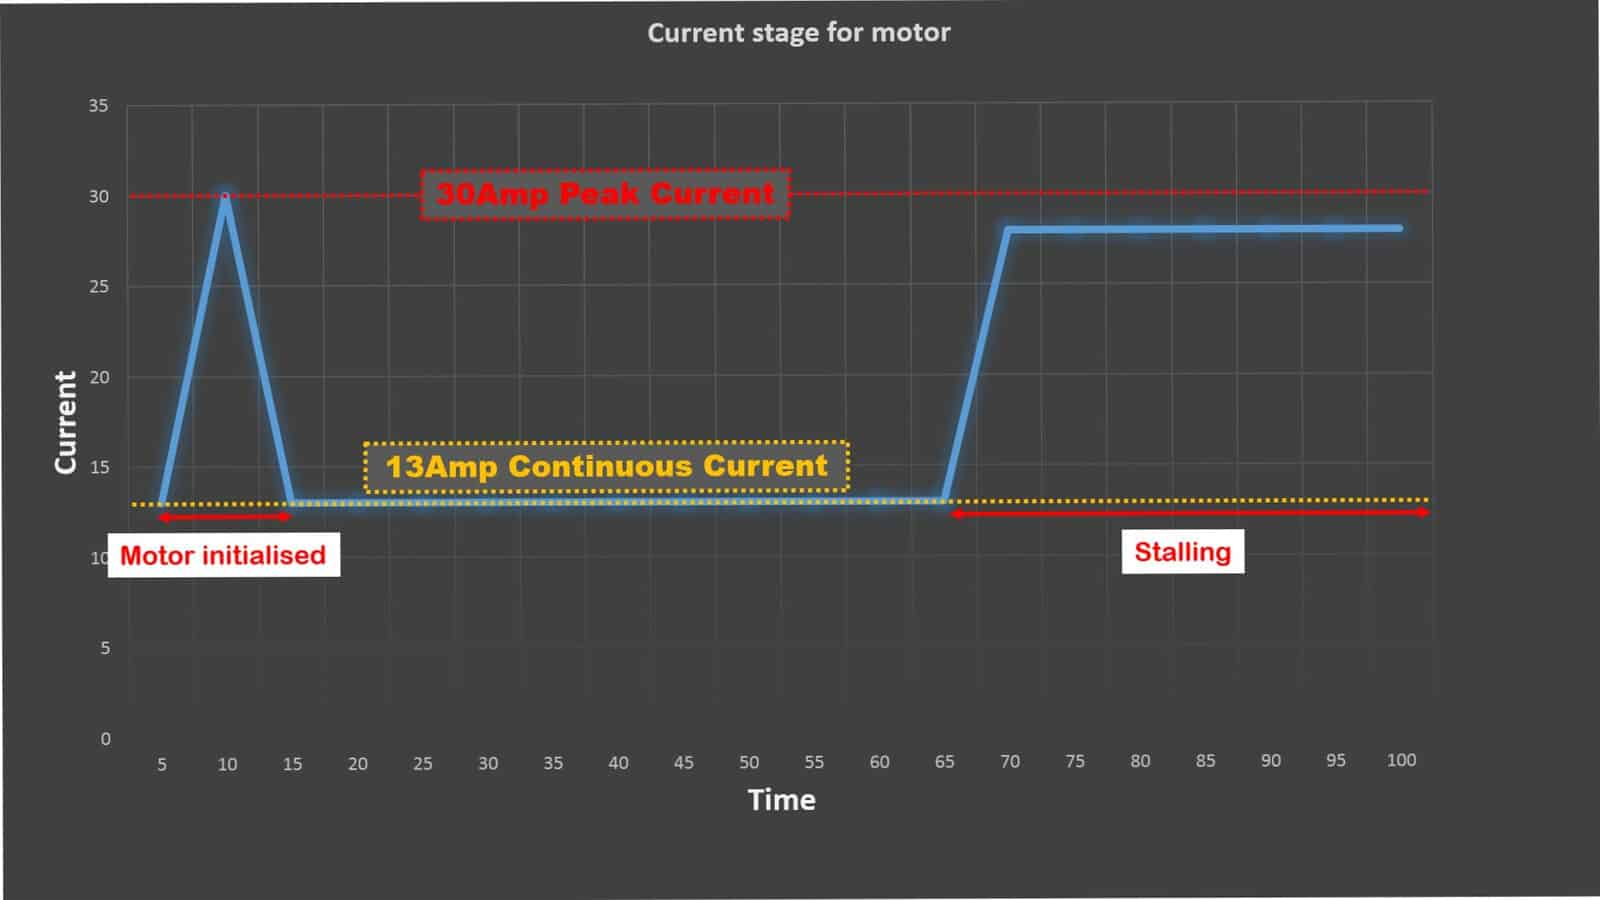 Peak Current Vs Continuous Rated Tutorial By Cytron Control My 12v Dc Motor Speed Electrical Engineering Stack Exchange The Drawn Will Increase With Load So When Is Force To Stop It Have Highest